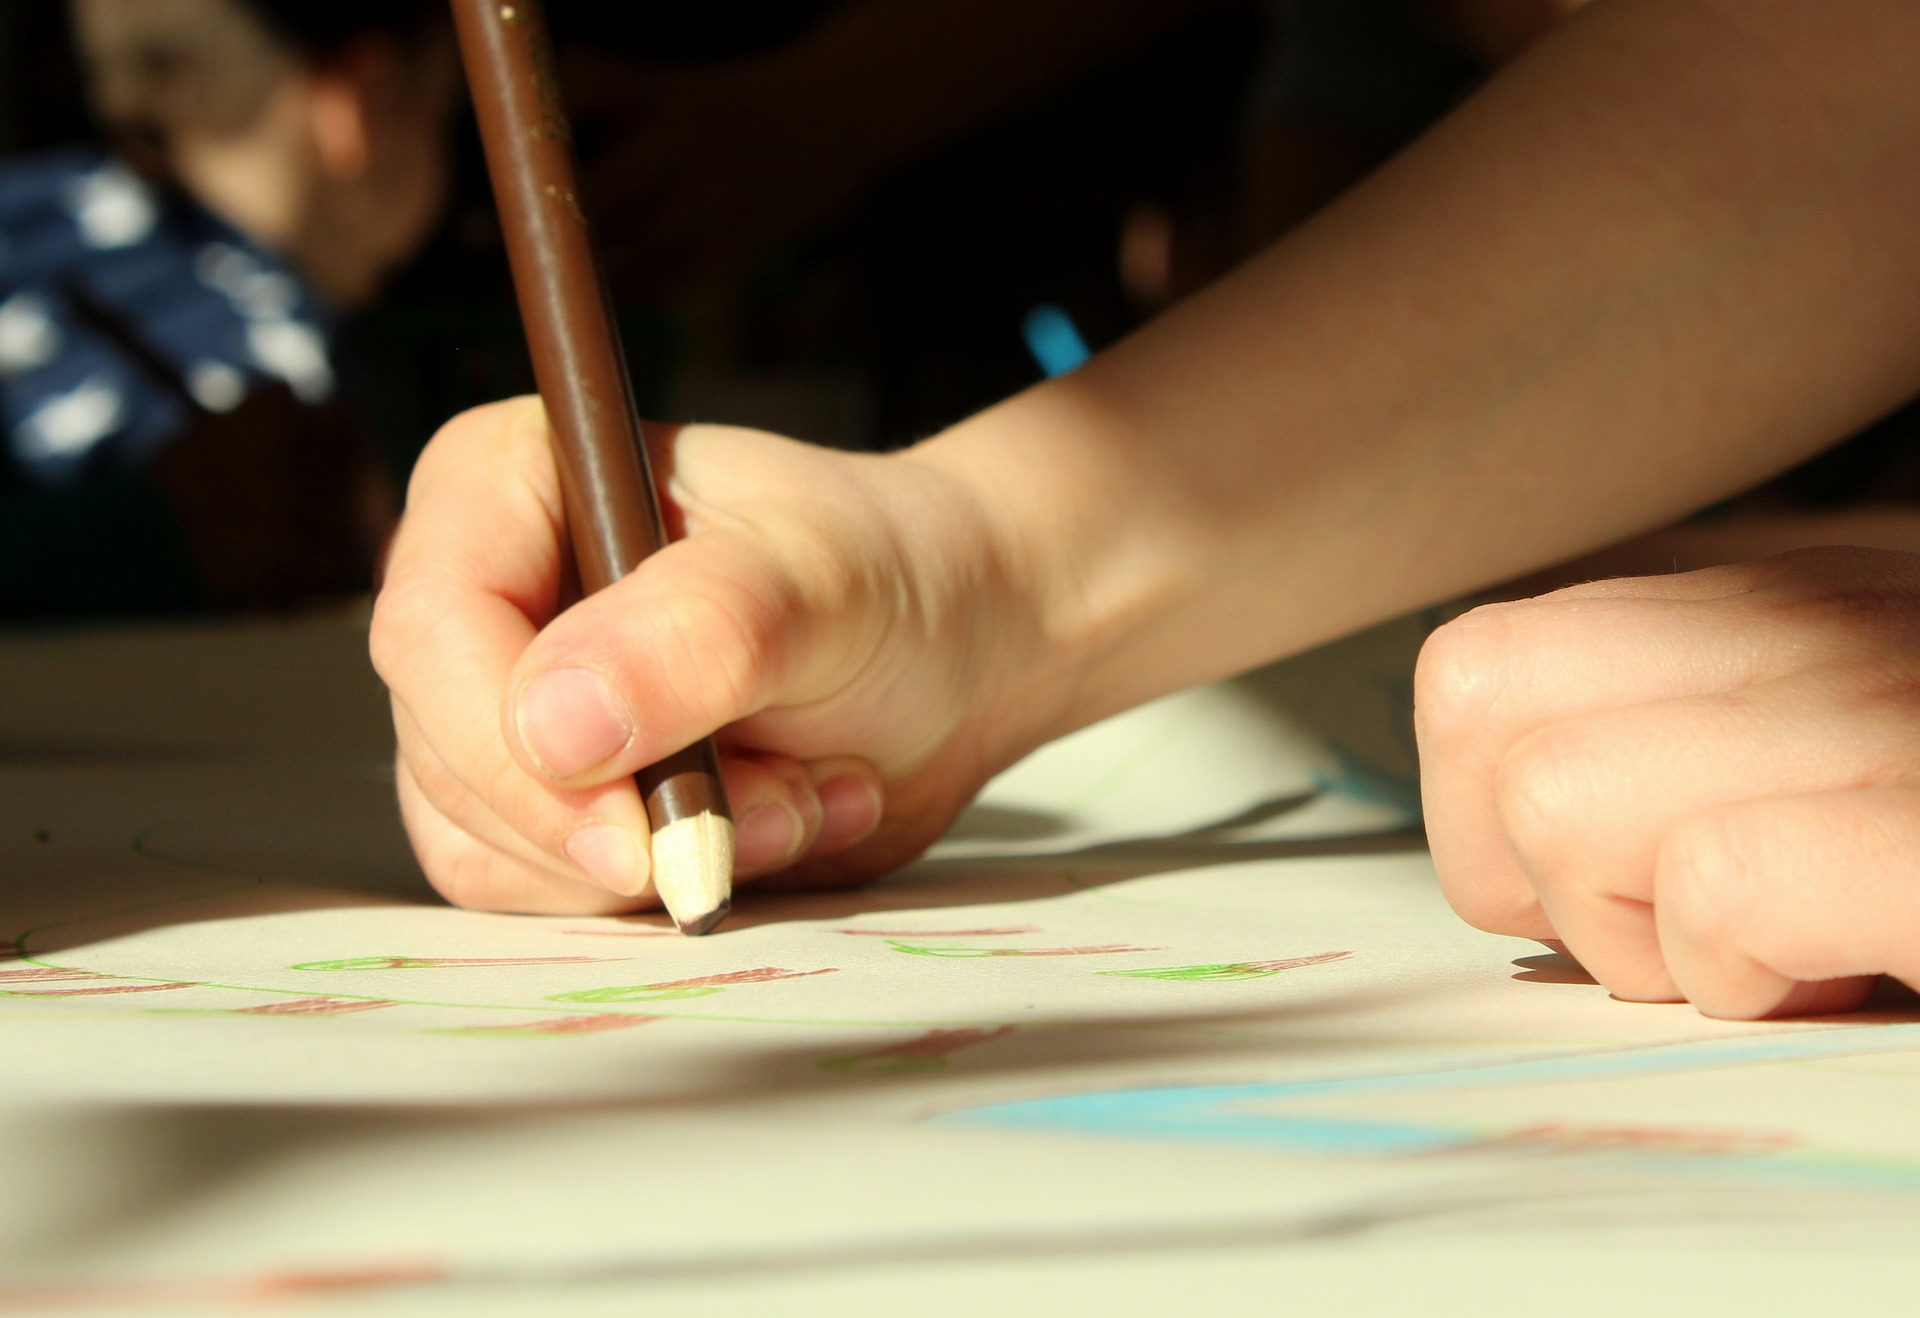 The Importance of Art Education for Children